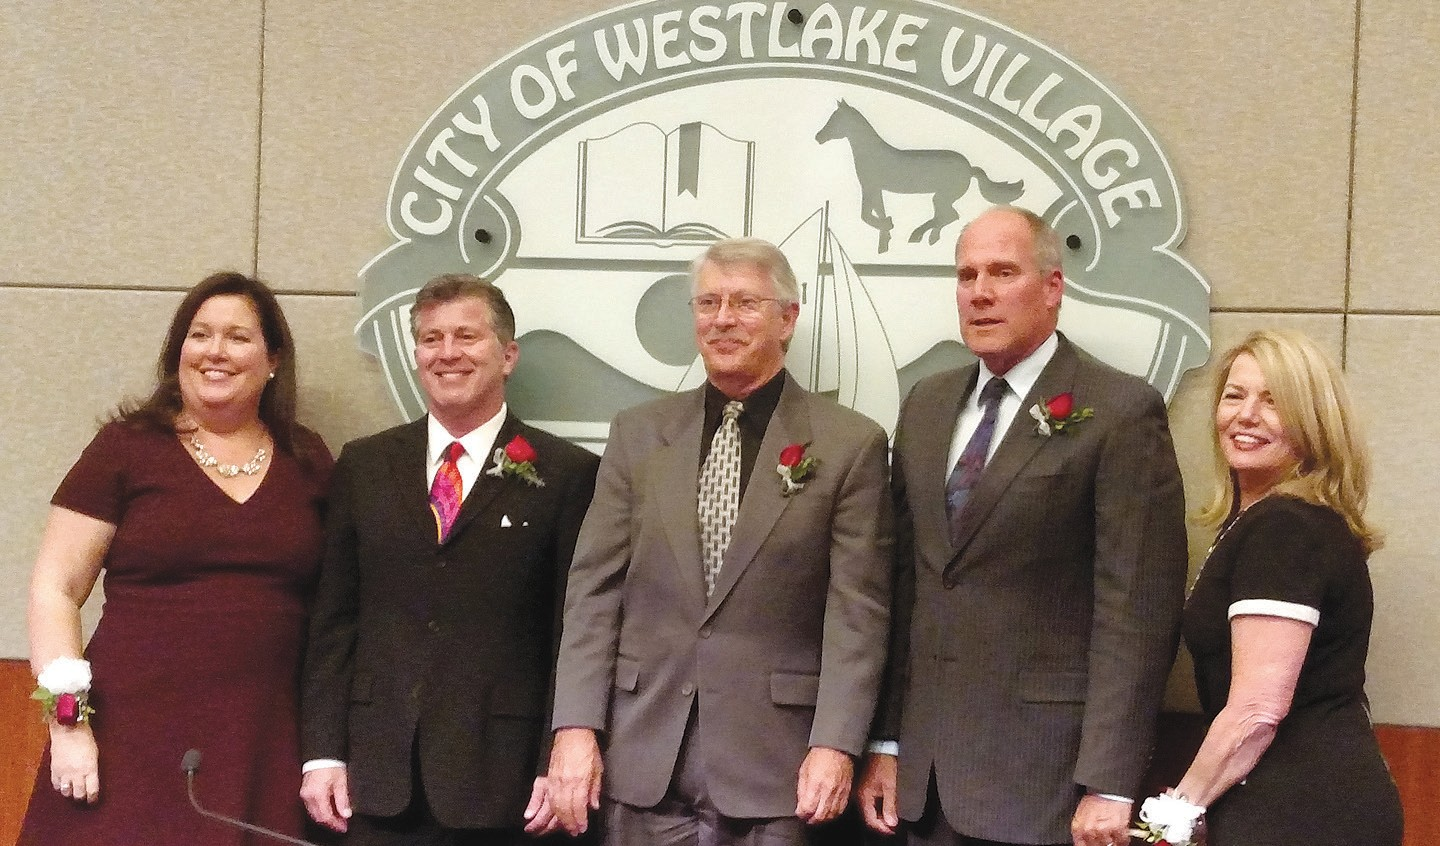 CITY LEADERS—The Westlake Village City Council members for 2018 are, from left, Kelly Honig, Brad Halpern, Mayor Mark Rutherford, Mayor Pro Tem Ned Davis and Susan McSweeney. IAN BRADLEY/Acorn Newspapers